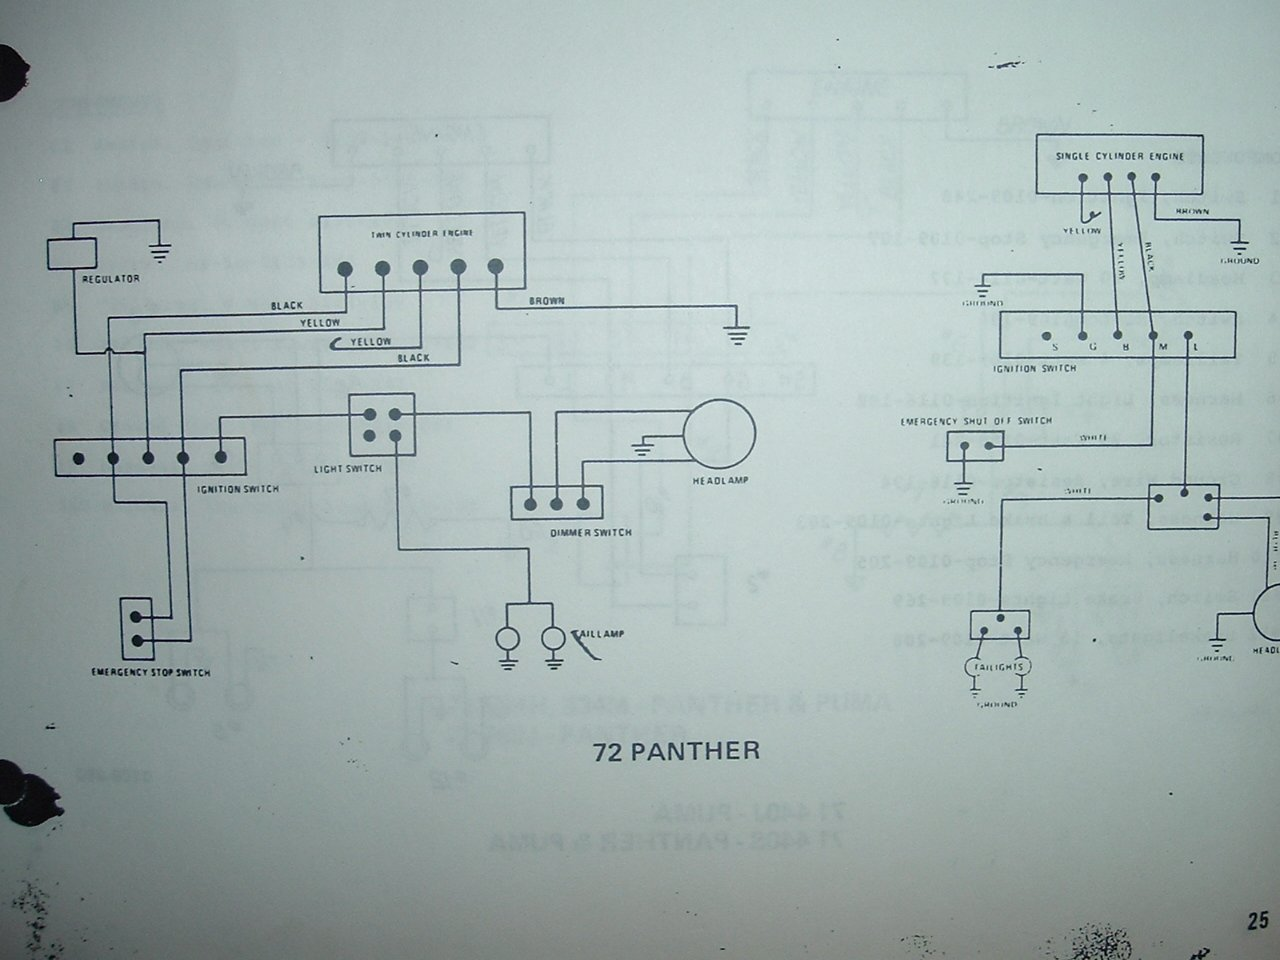 hight resolution of arctic cat 1971 panther wiring diagram wiring diagram arctic cat 1971 panther wiring diagram